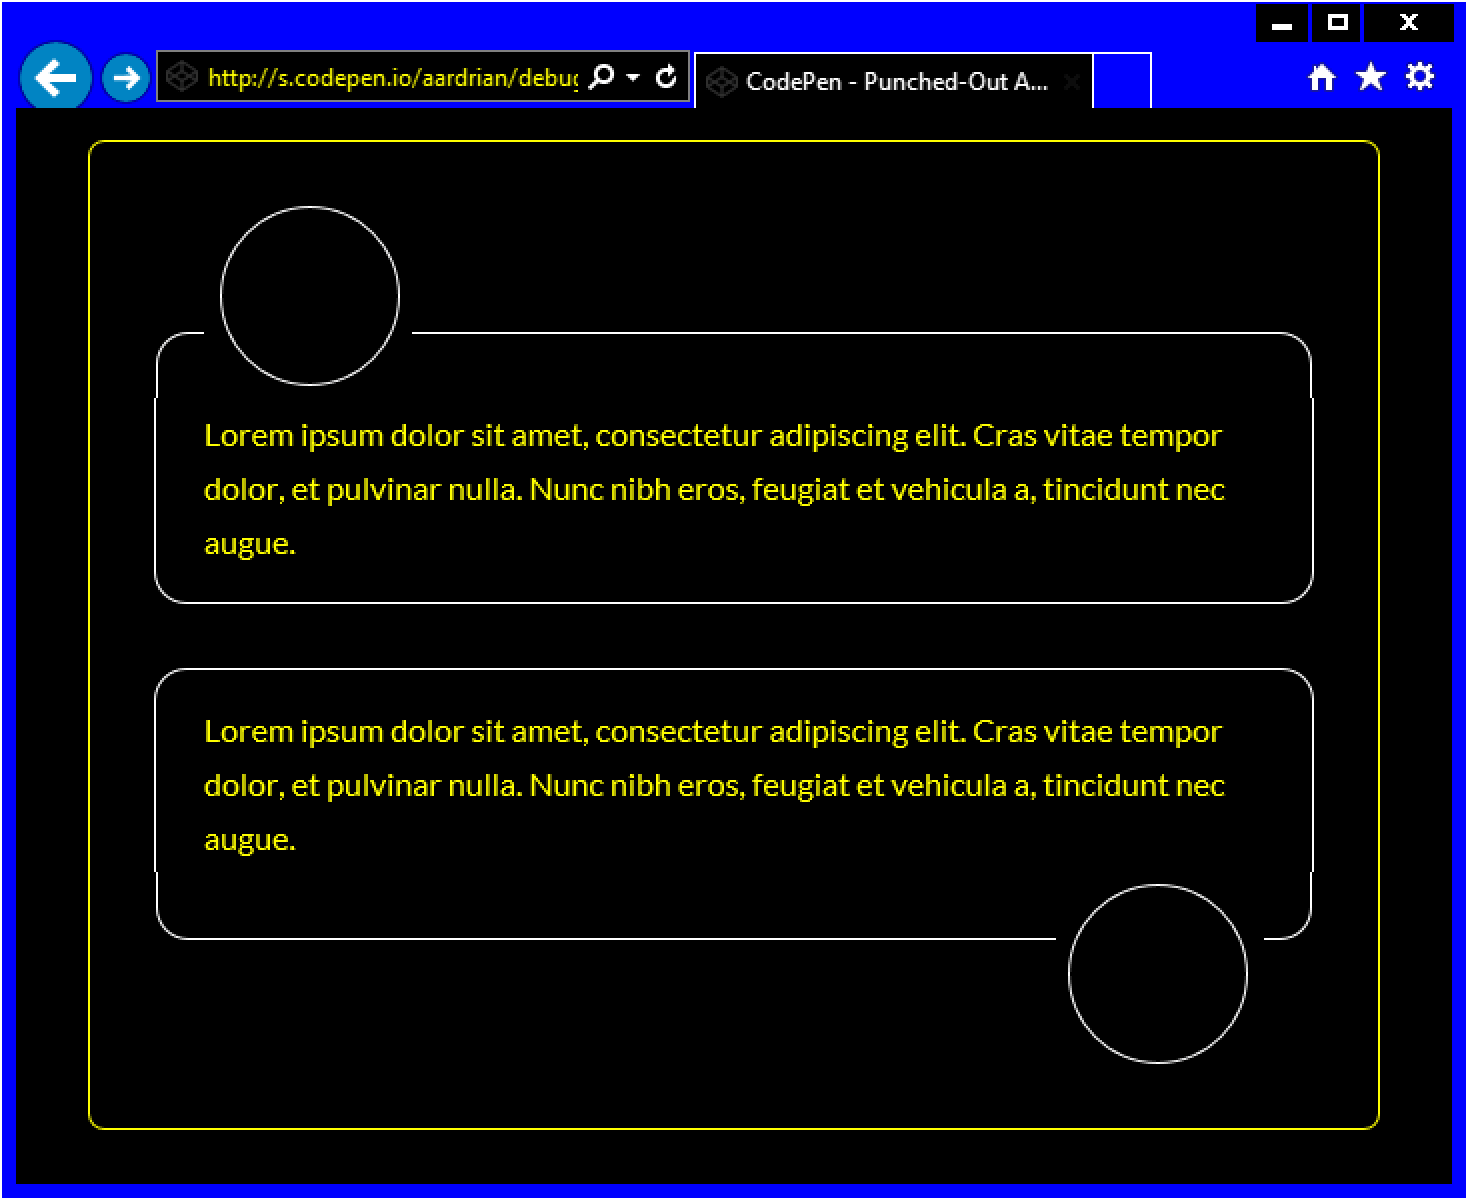 Screen shot of two variations on the punch out avatar example as seen in IE11 using Windows High Contrast Mode.